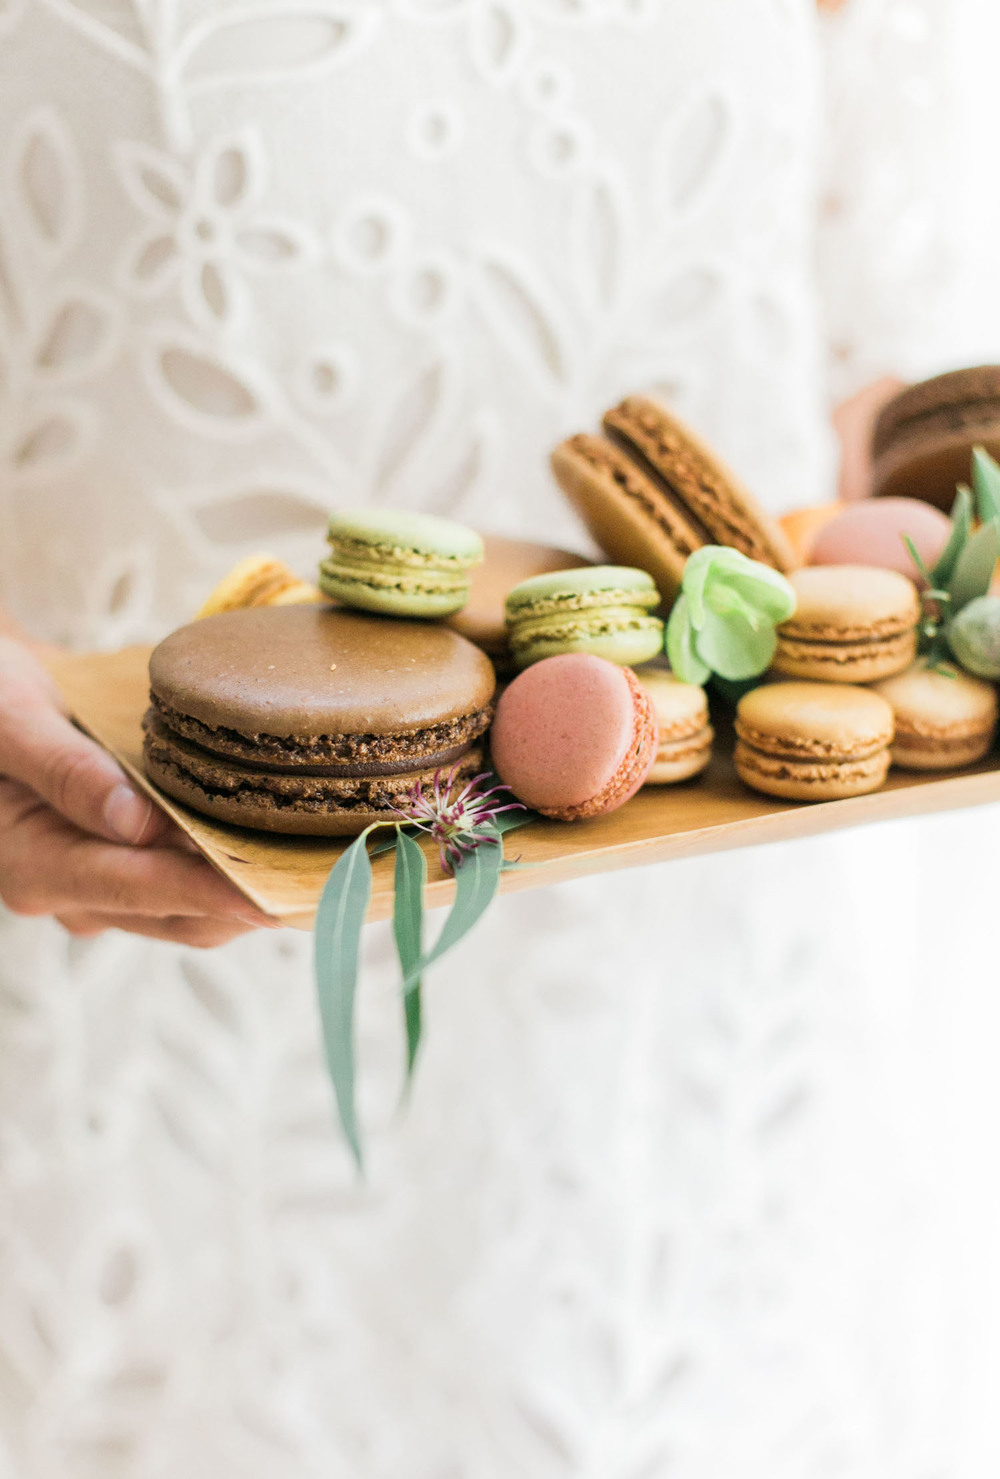 Macarons stacked with touches of flowers are a simple way to DIY dessert for your dinner party | A Fabulous Fete